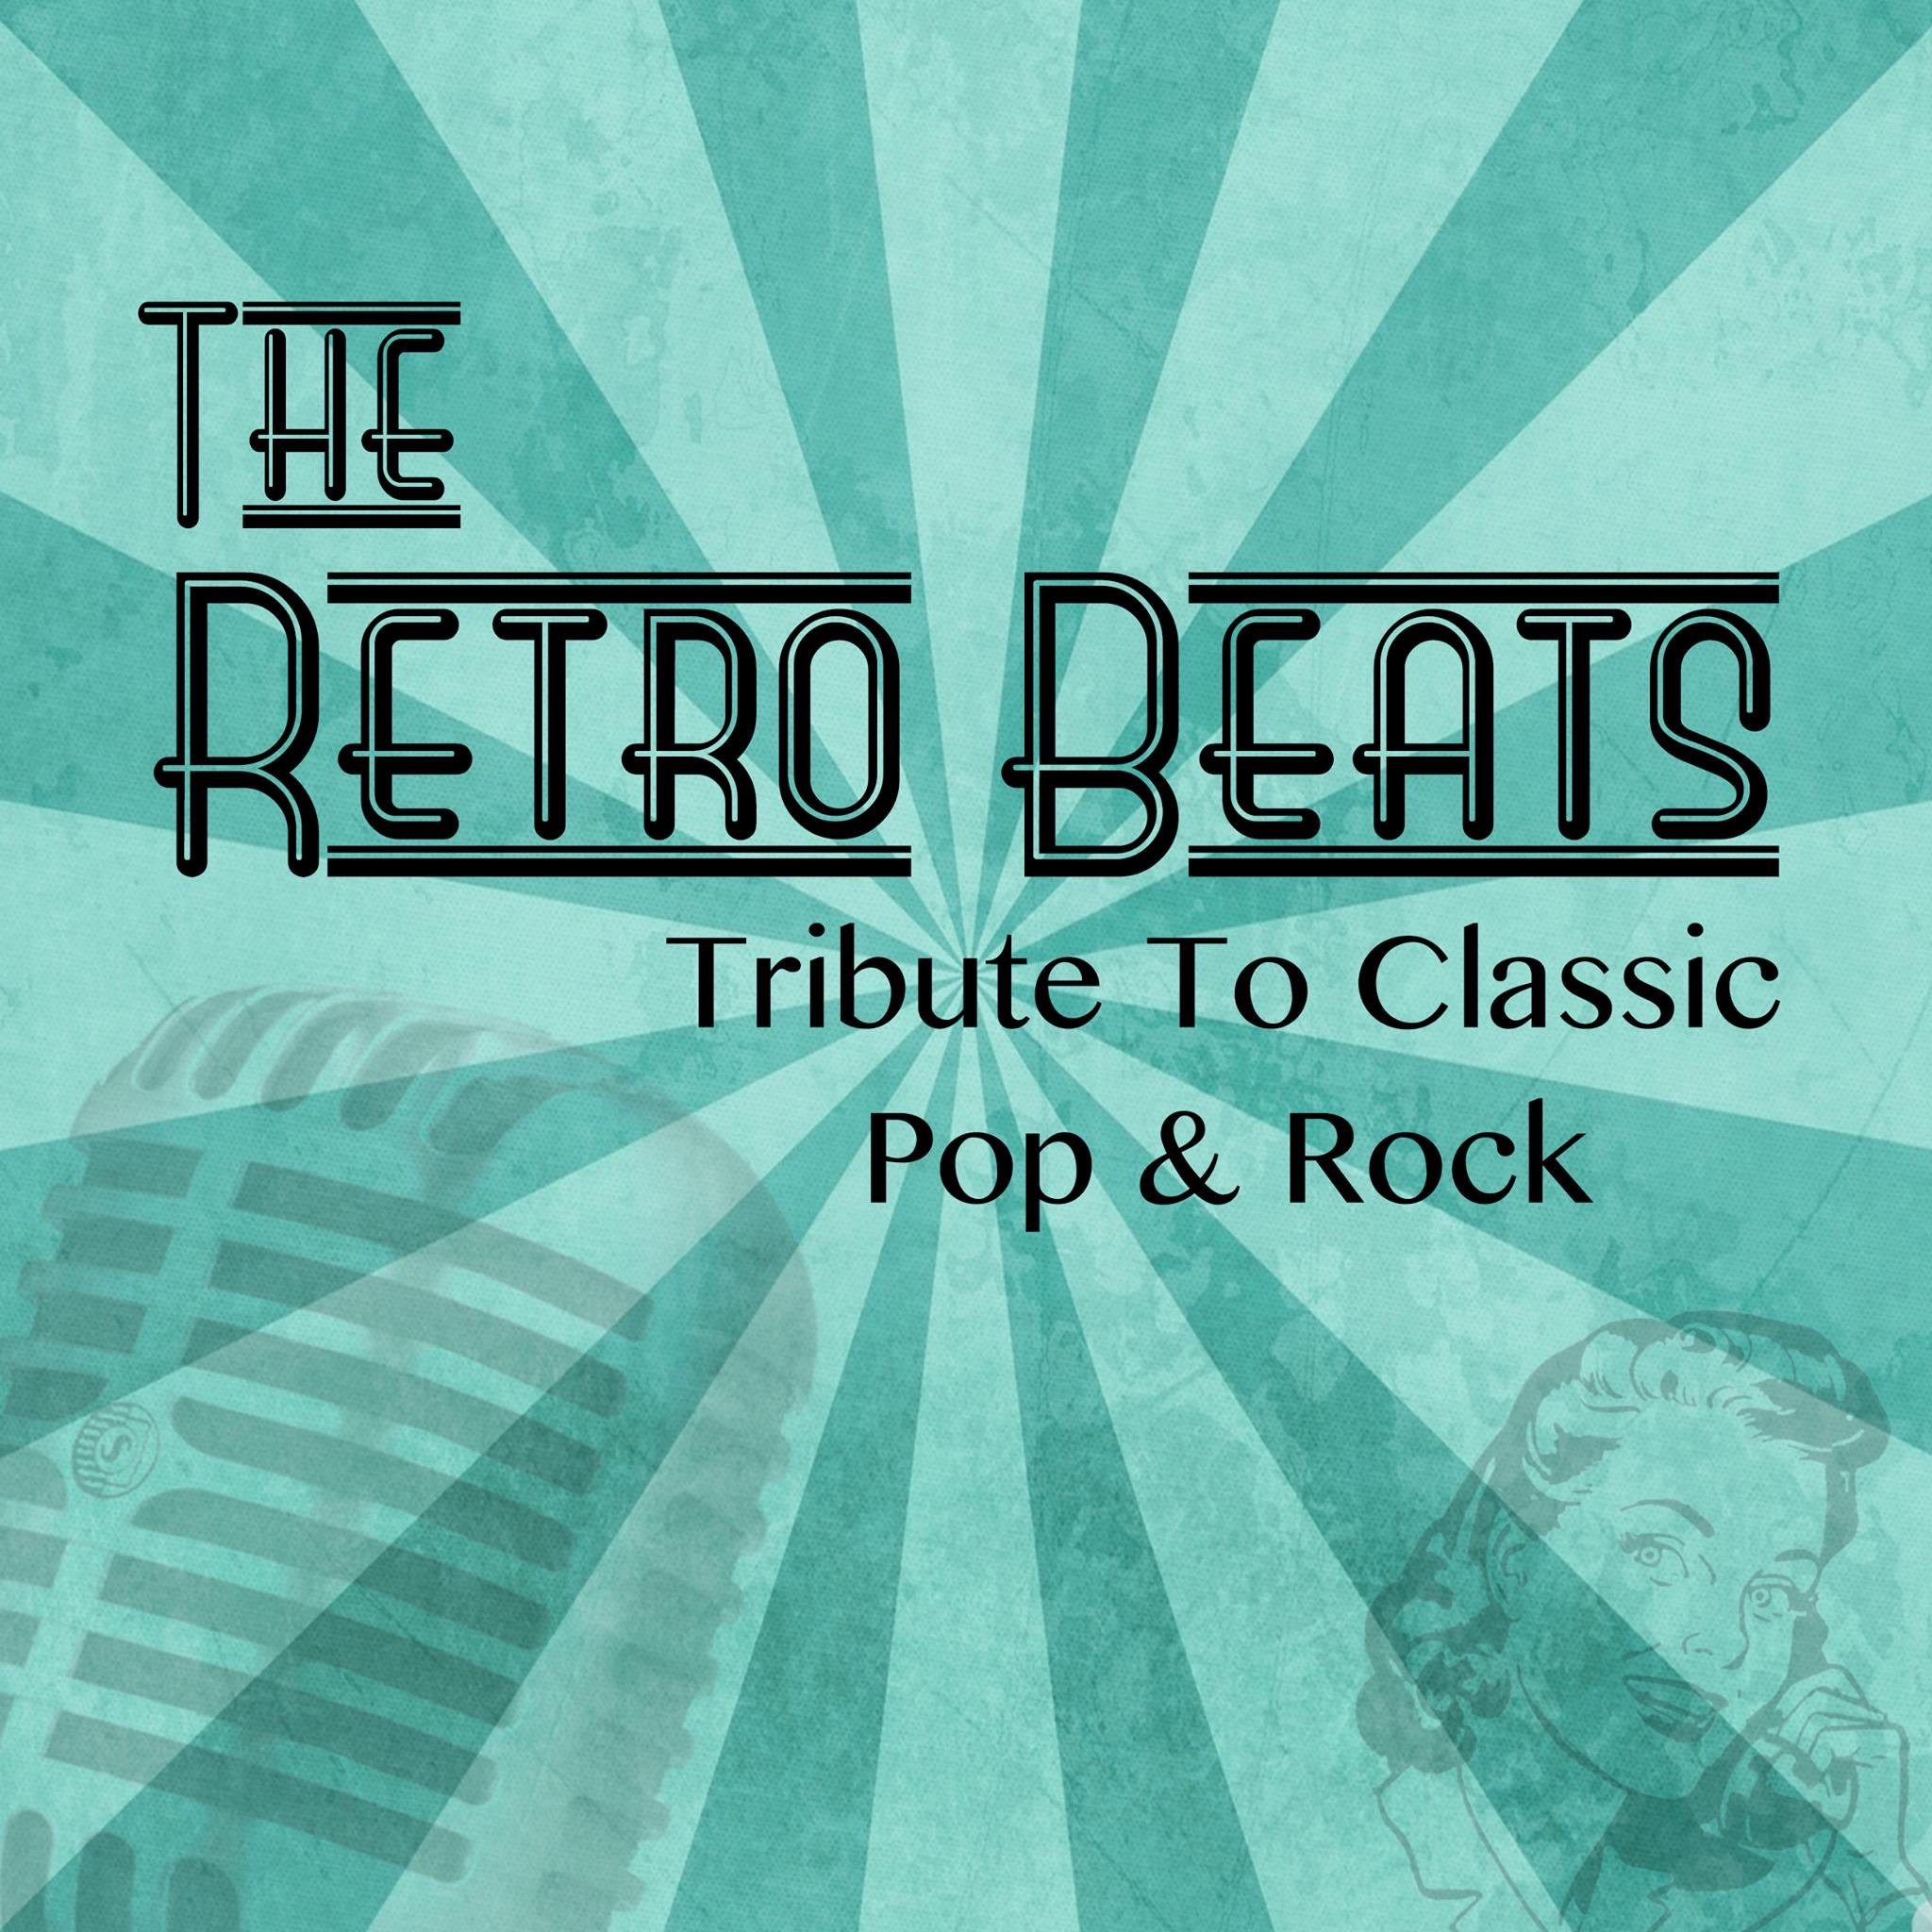 The Retrobeats